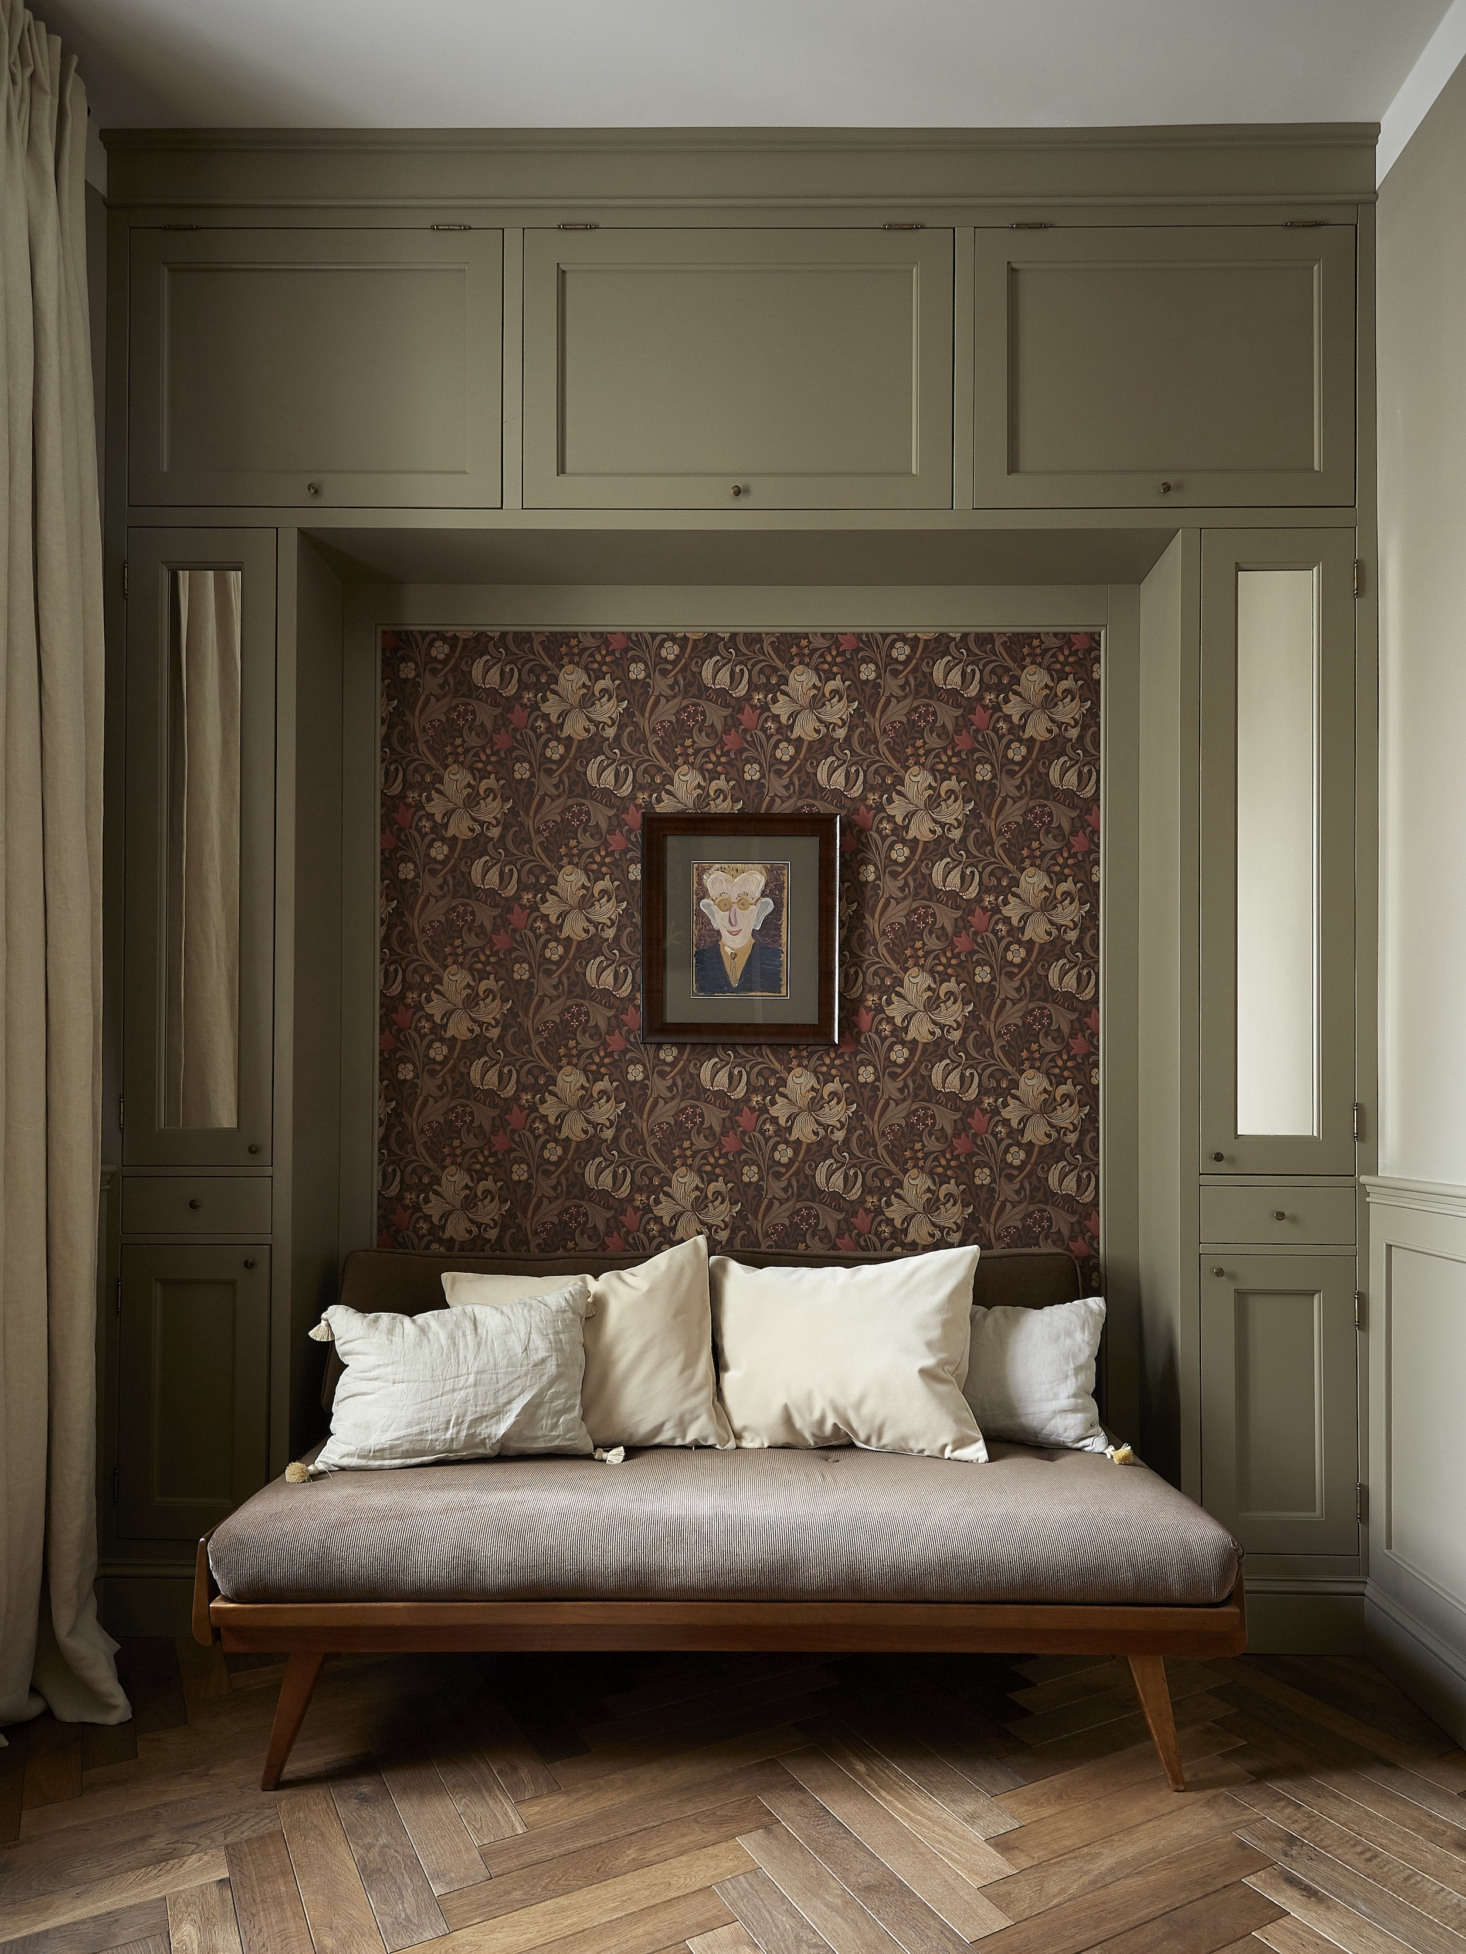 A quiet corner from Creative Flow: A Novelist's Elegant Pied-a-Terre by Colombe Studio. Photograph byKasia Gatkowska, courtesy of Colombe Studio.